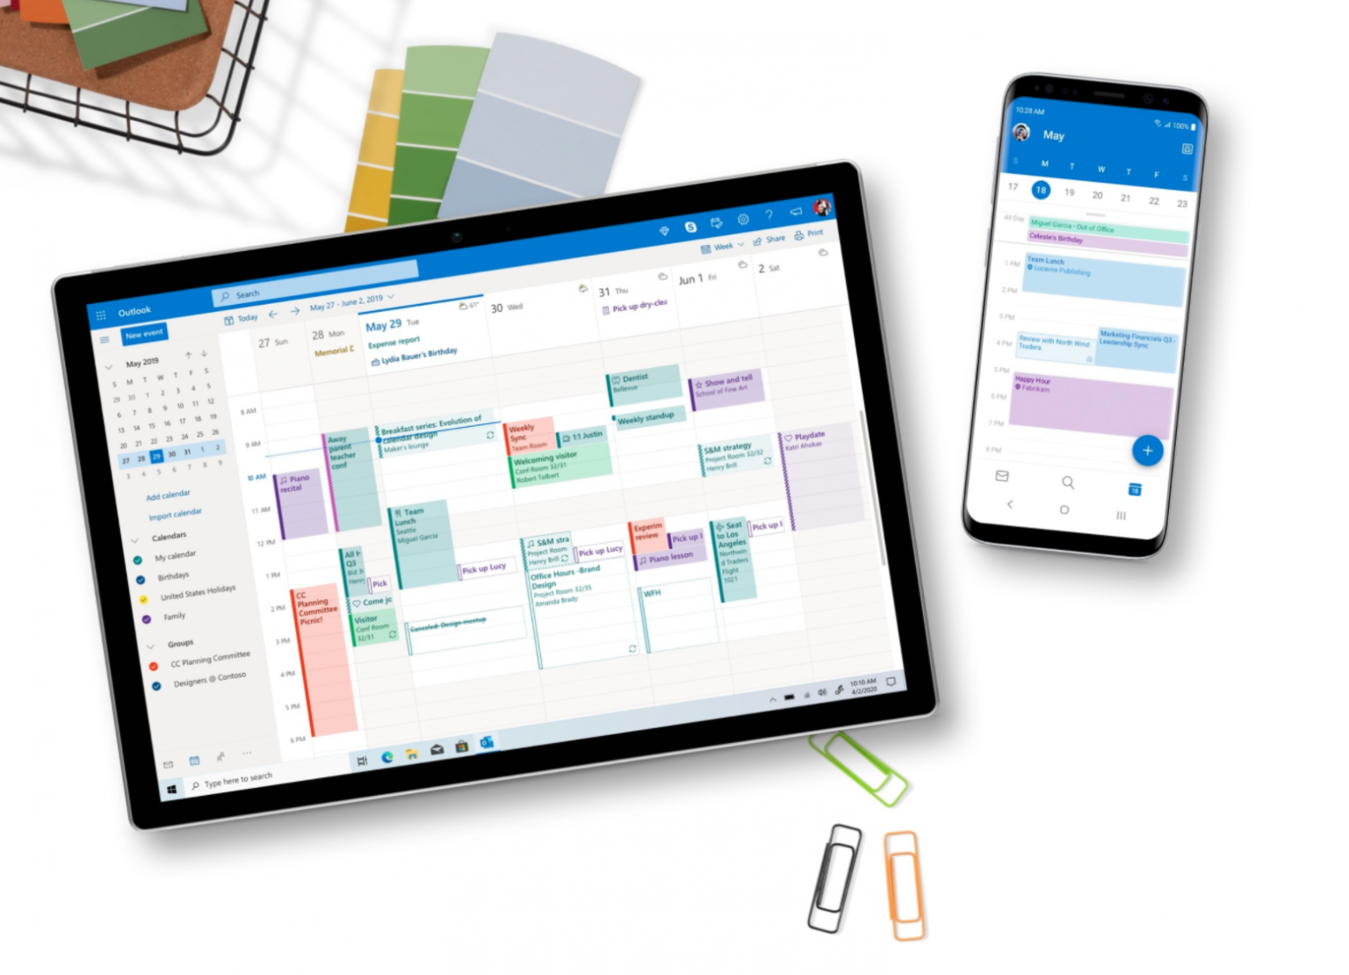 Microsoft Office and Outlook mockup